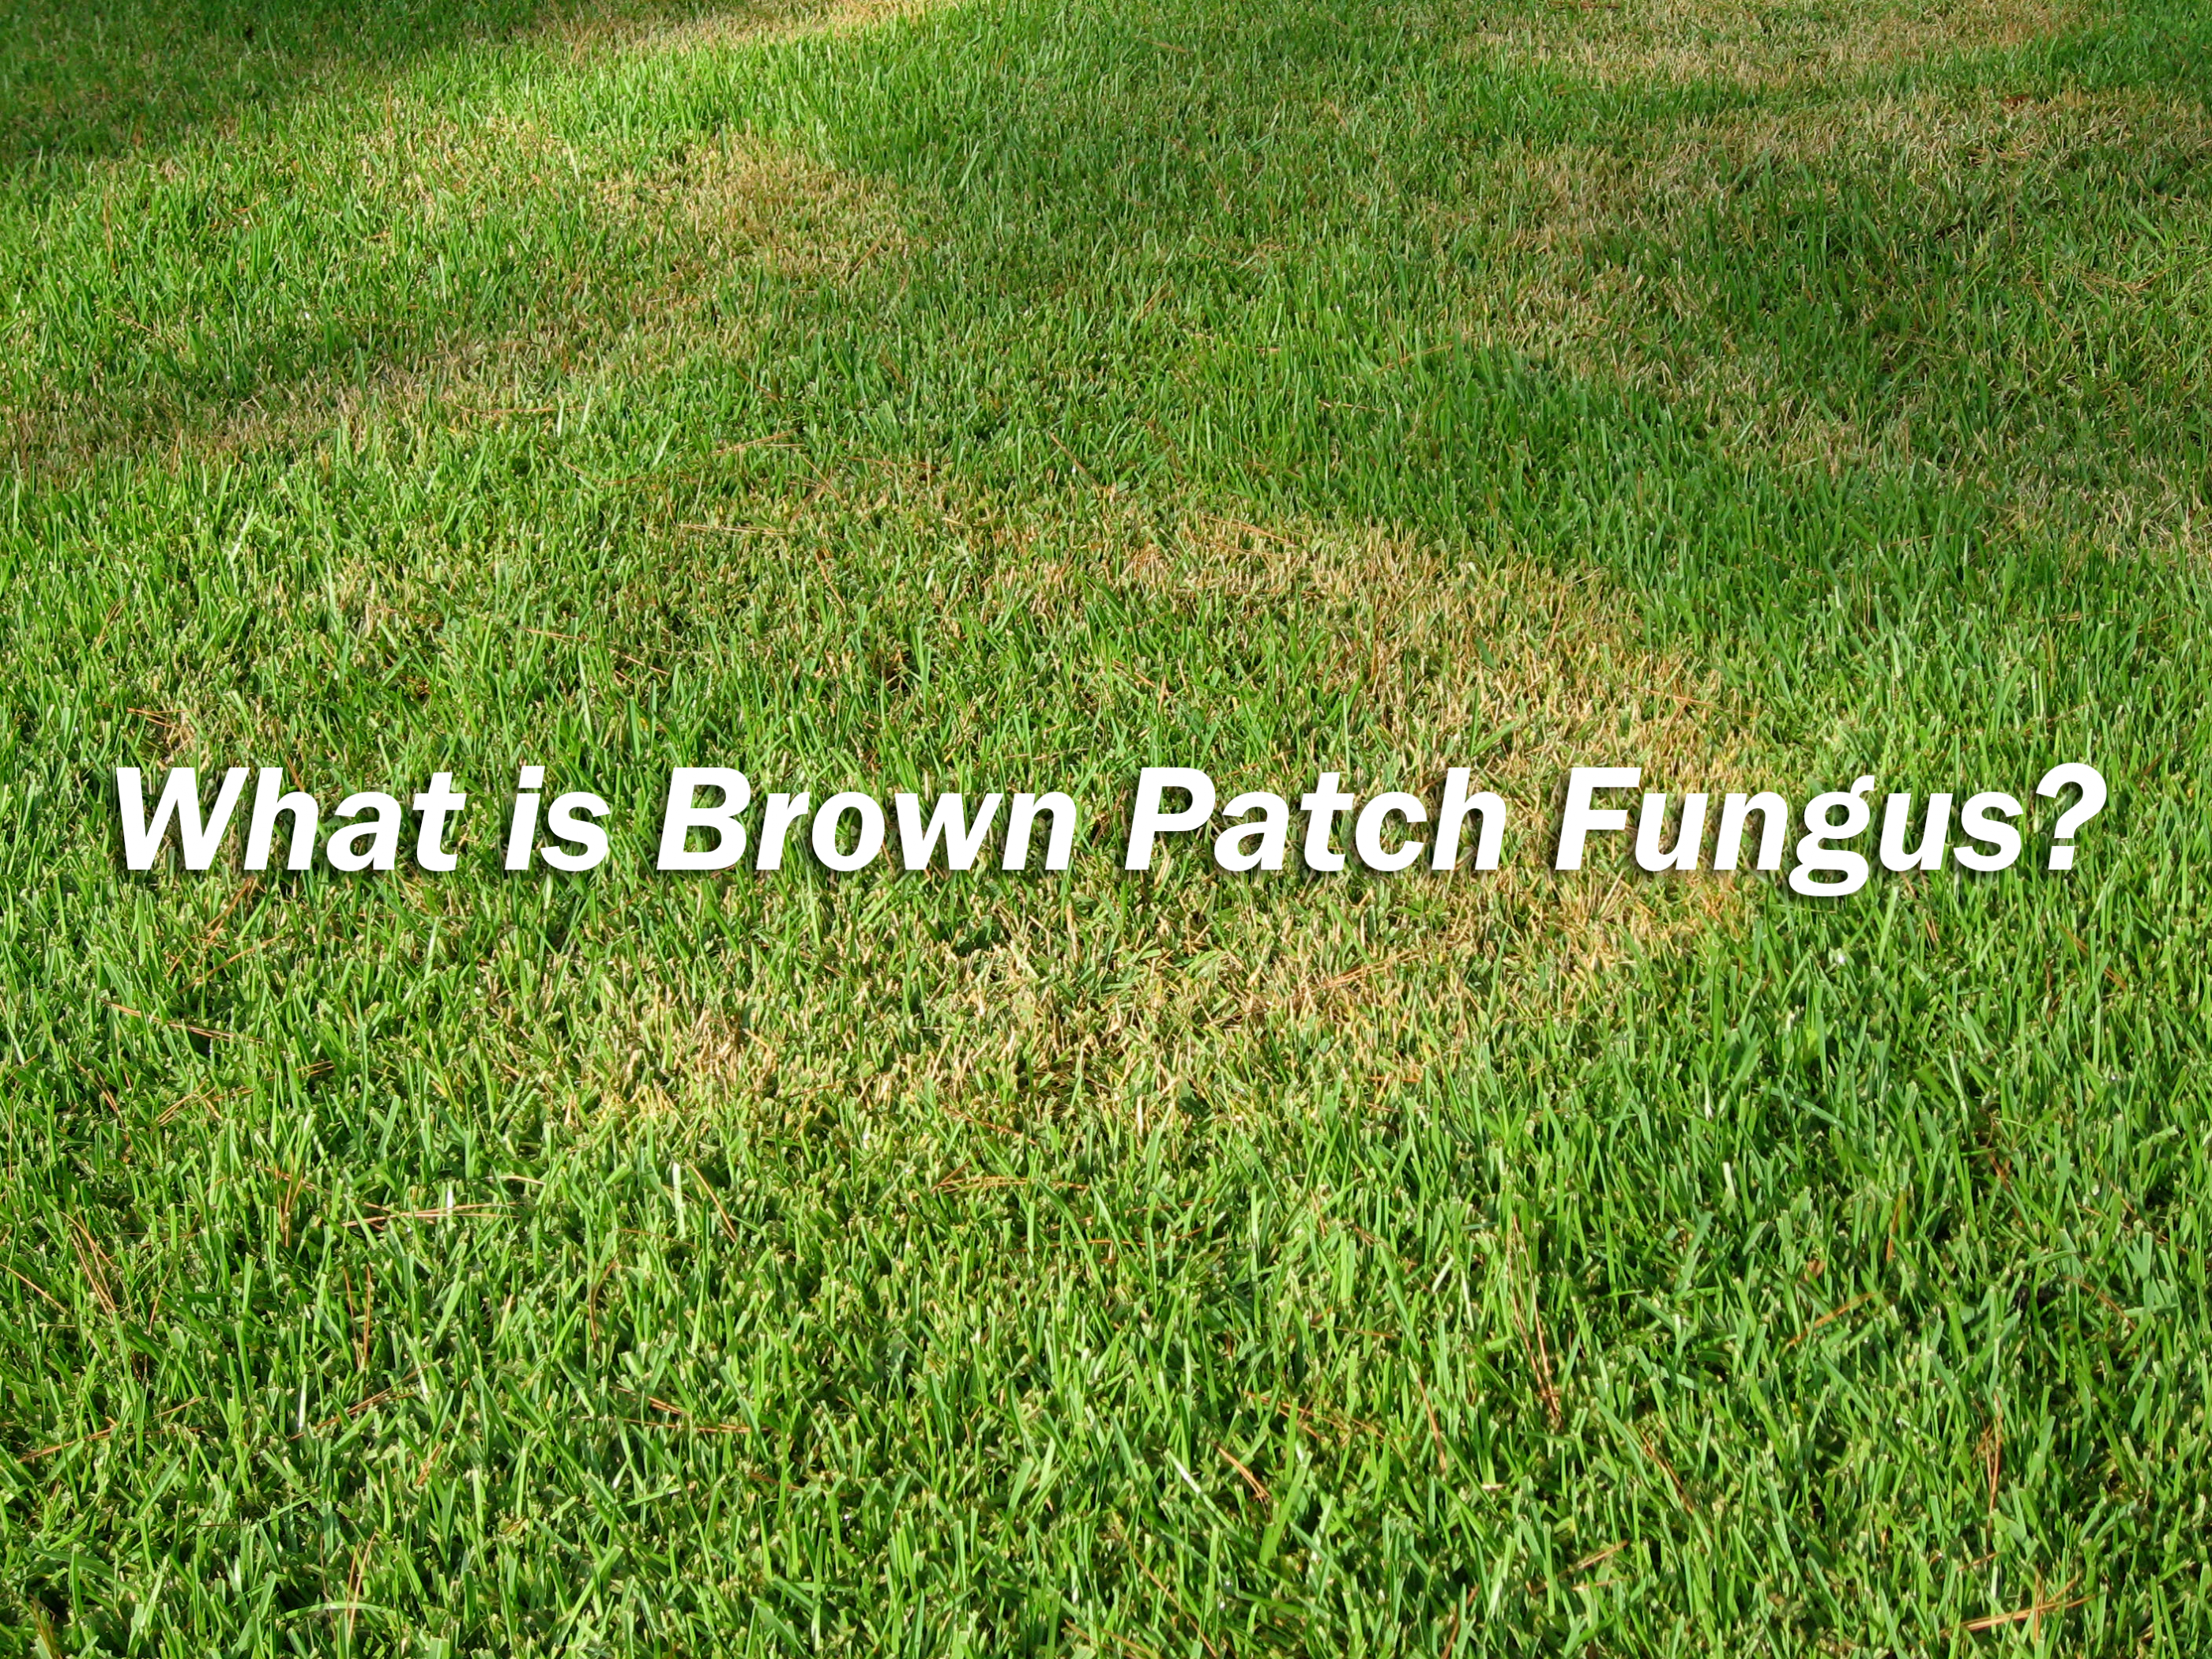 brown patch fungus